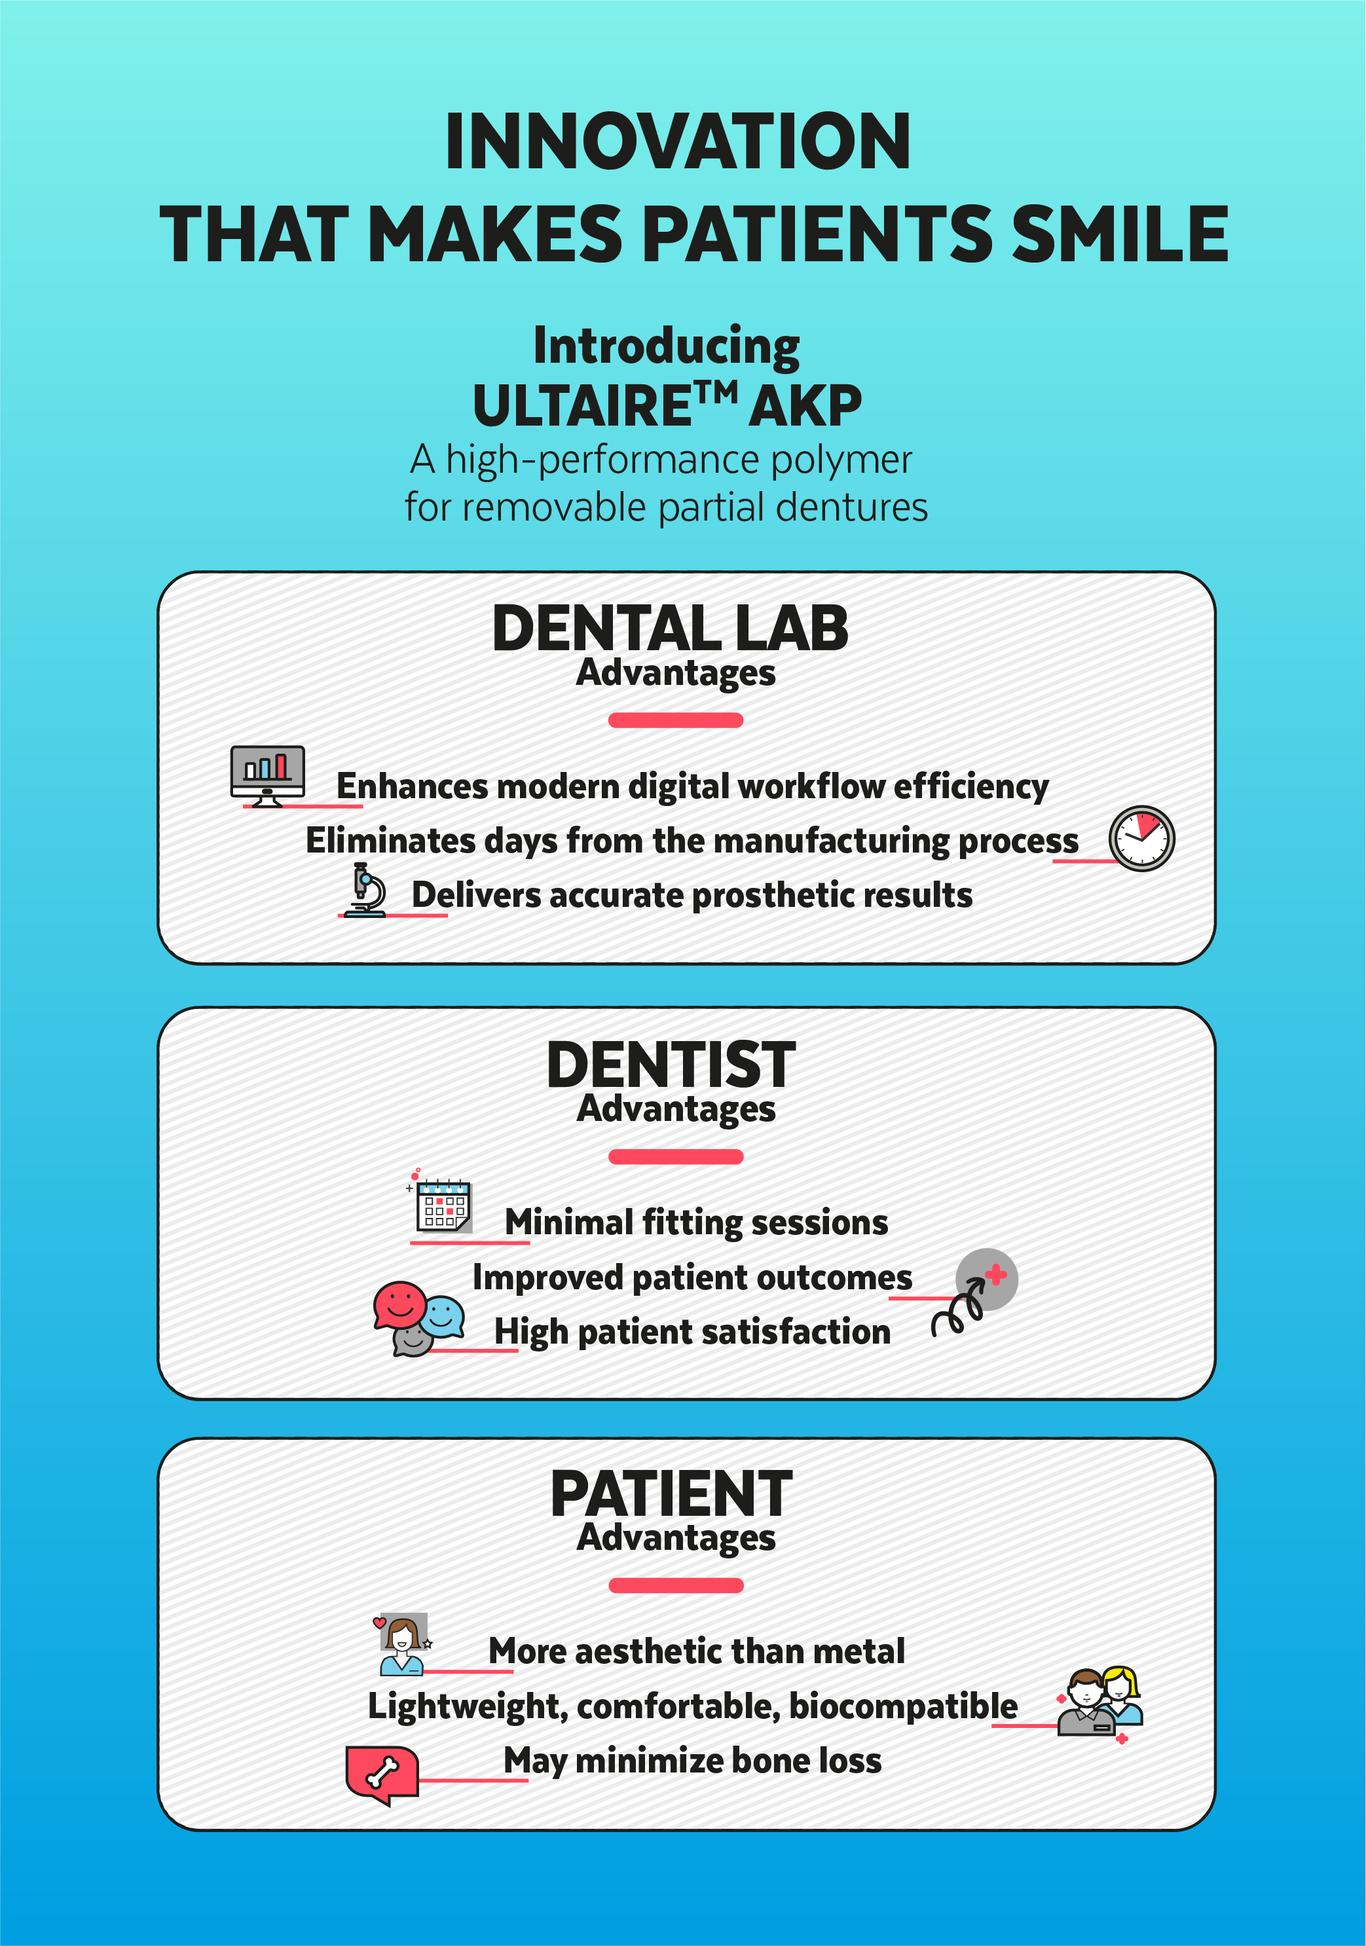 ultaire-akp-is-a-high-performance-polymer-for-removable-partial-dentures